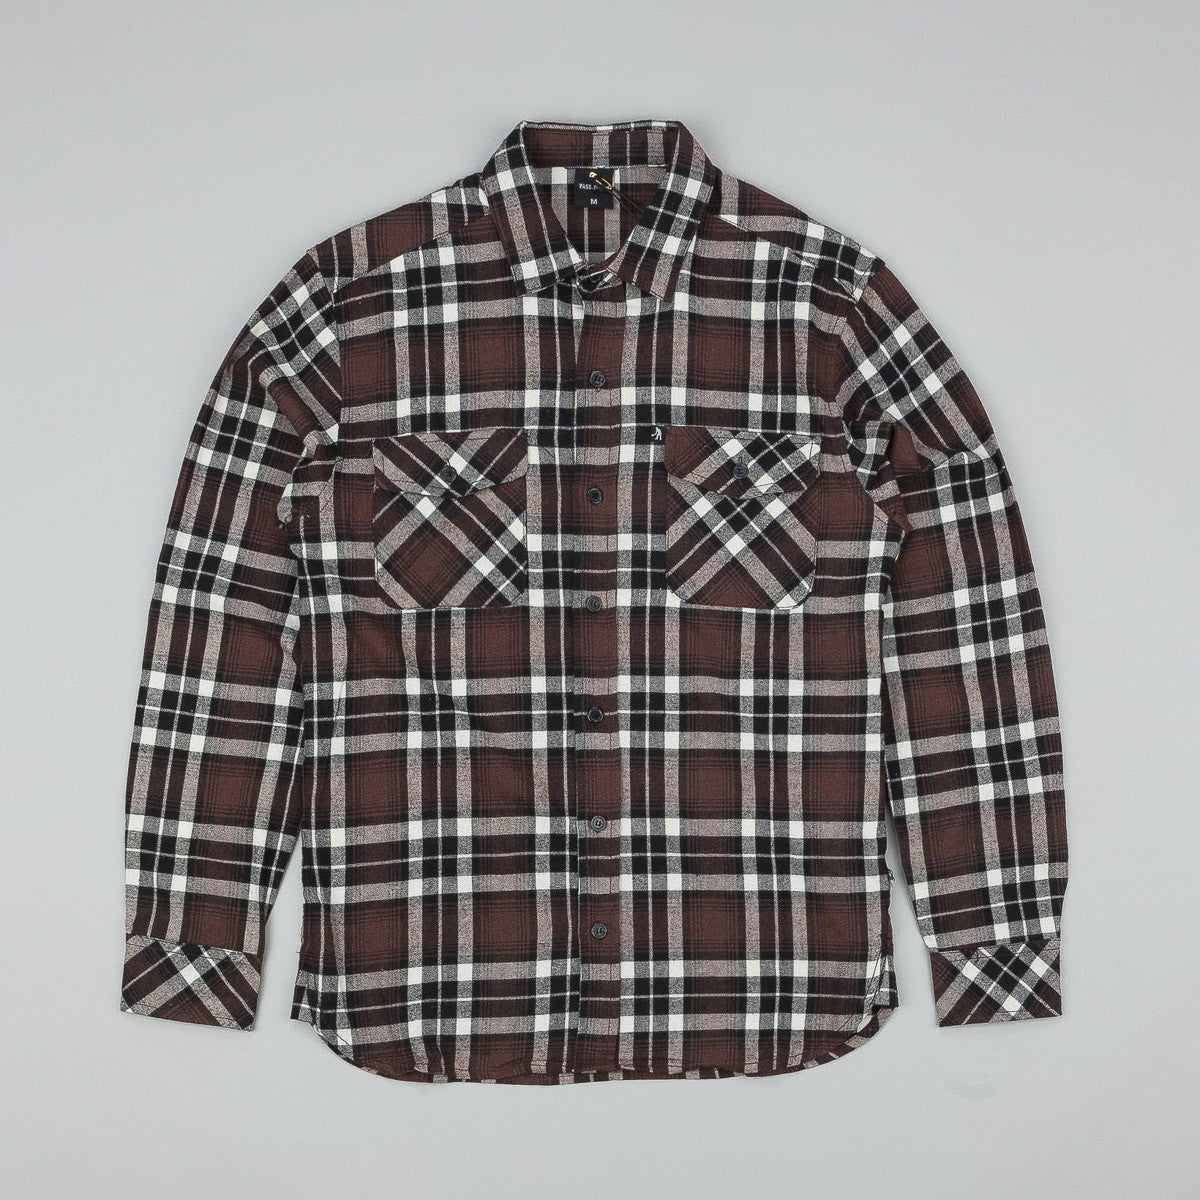 Pass Port Worker's Flannelette Shirt - Chocolate / Black